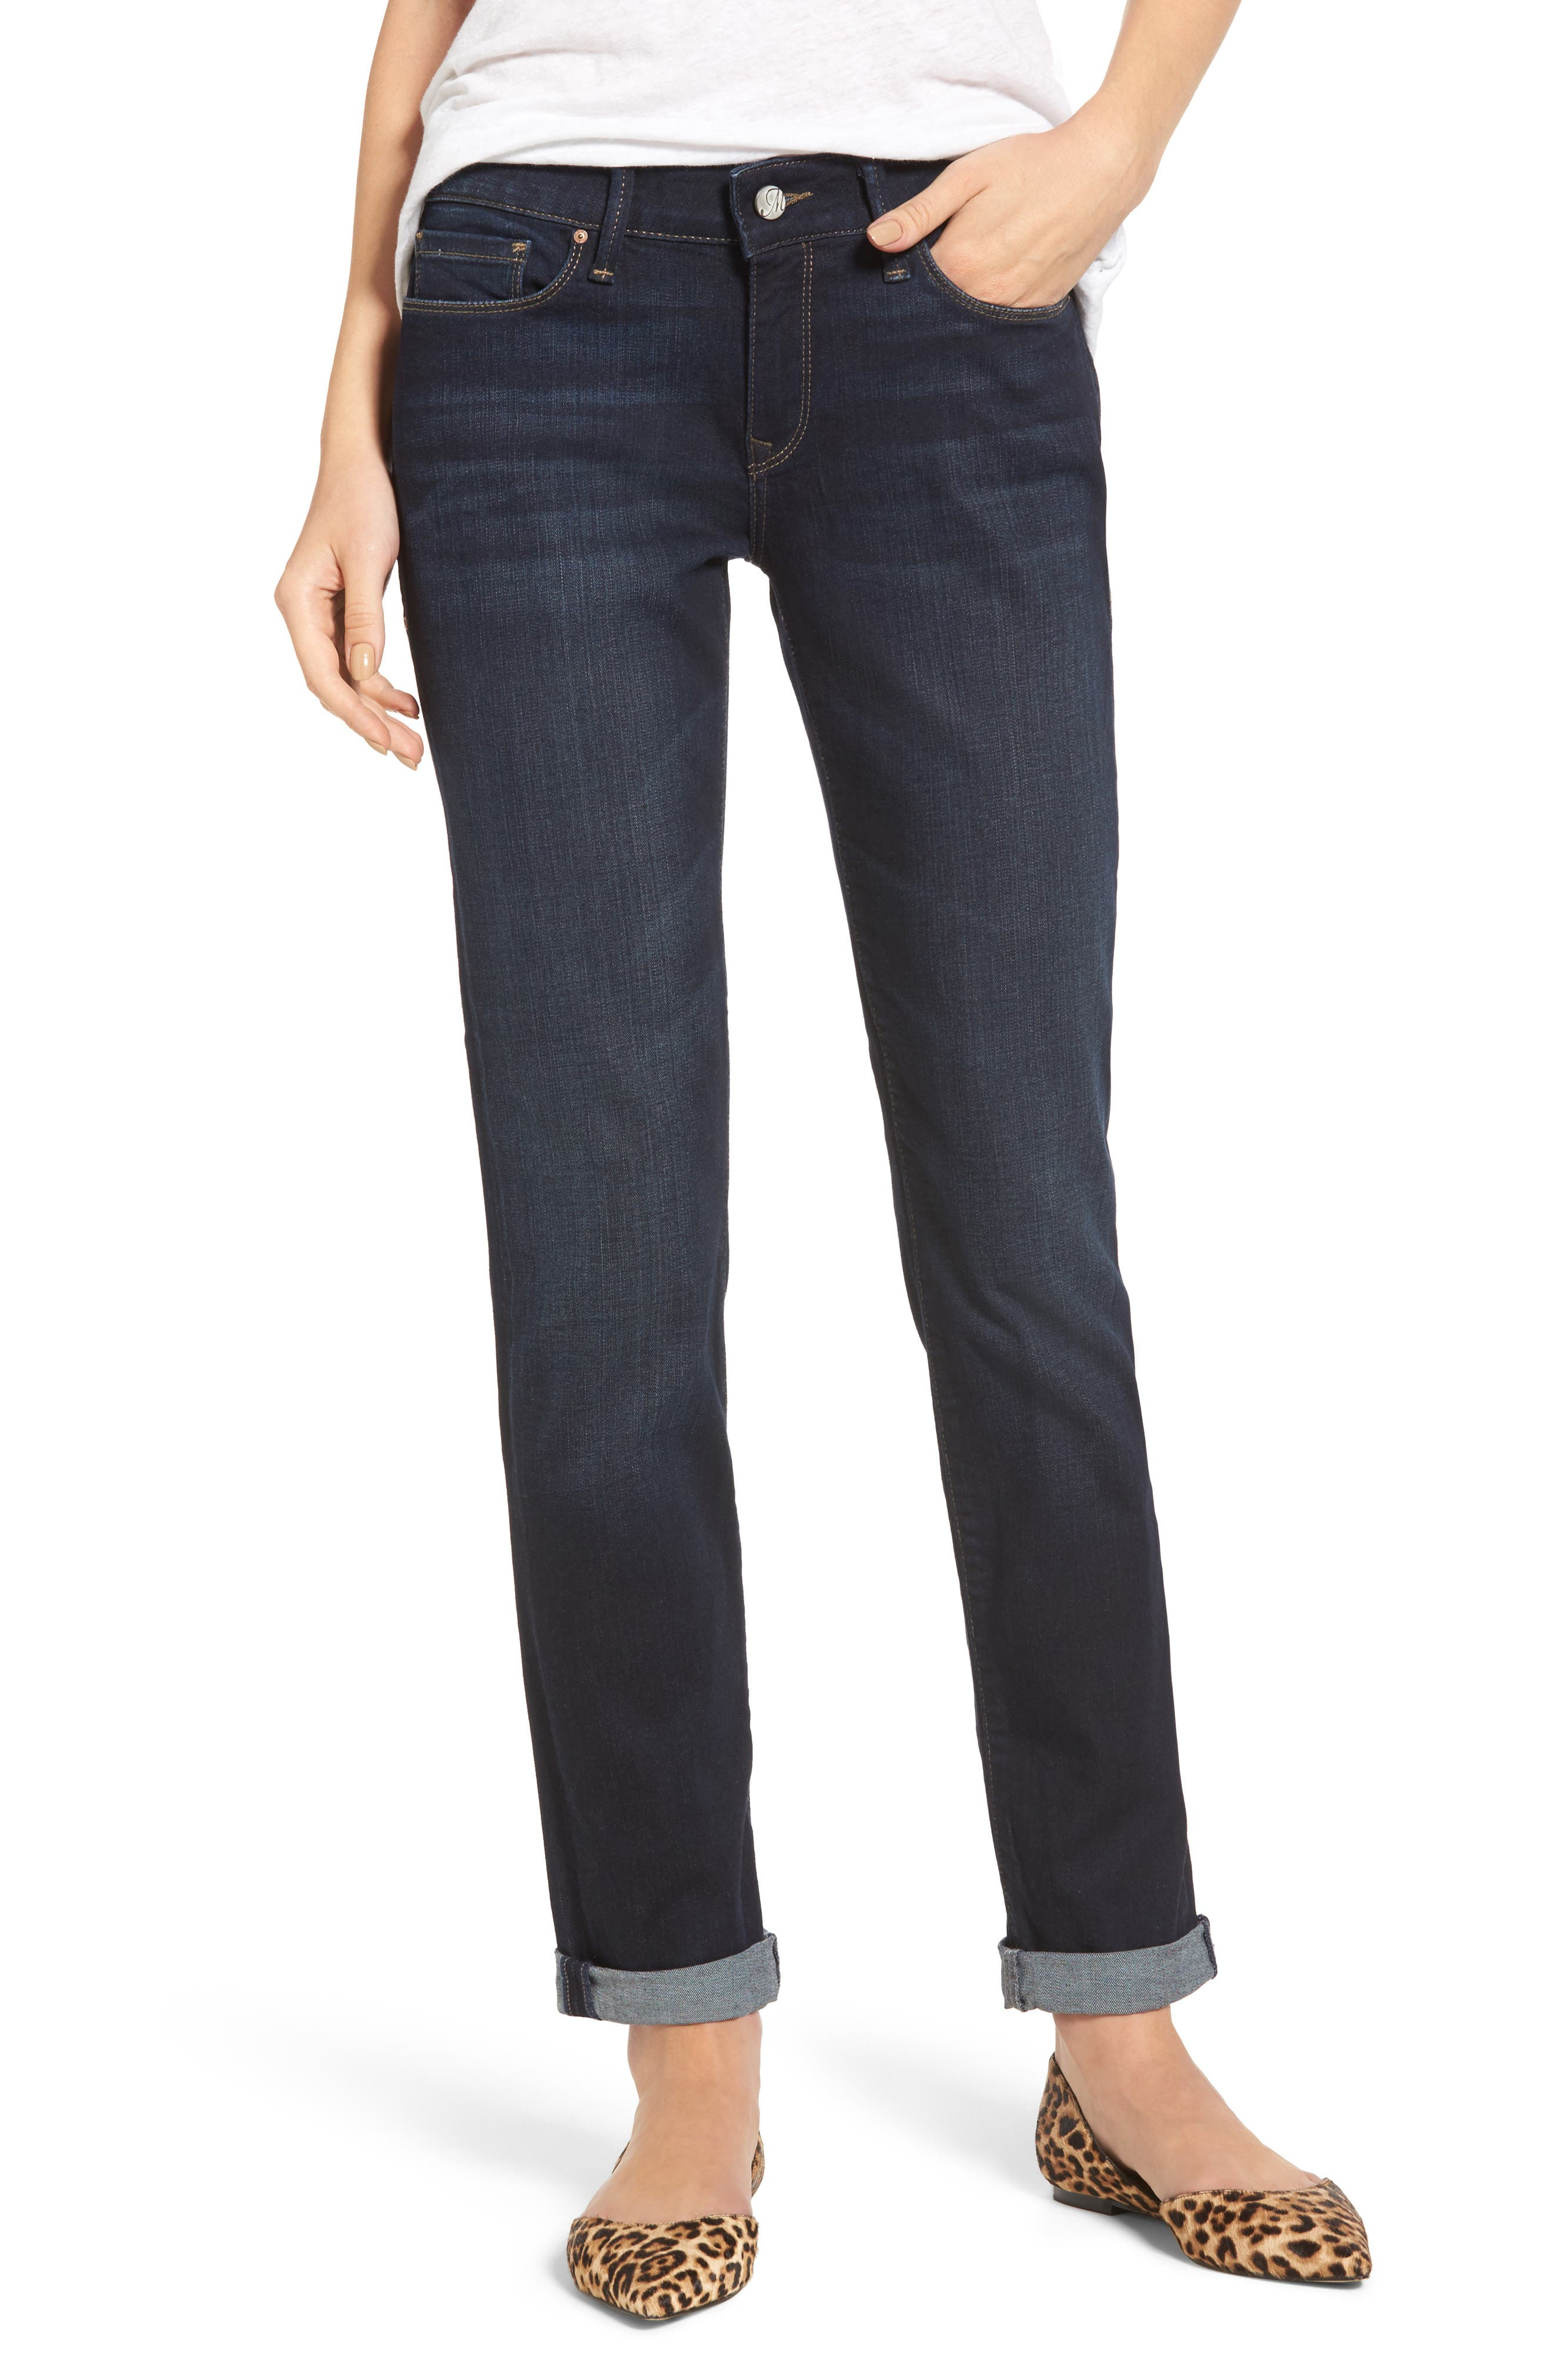 Emma Slim Boyfriend Jeans,                             Main thumbnail 1, color,                             DEEP BRUSHED TRIBECA